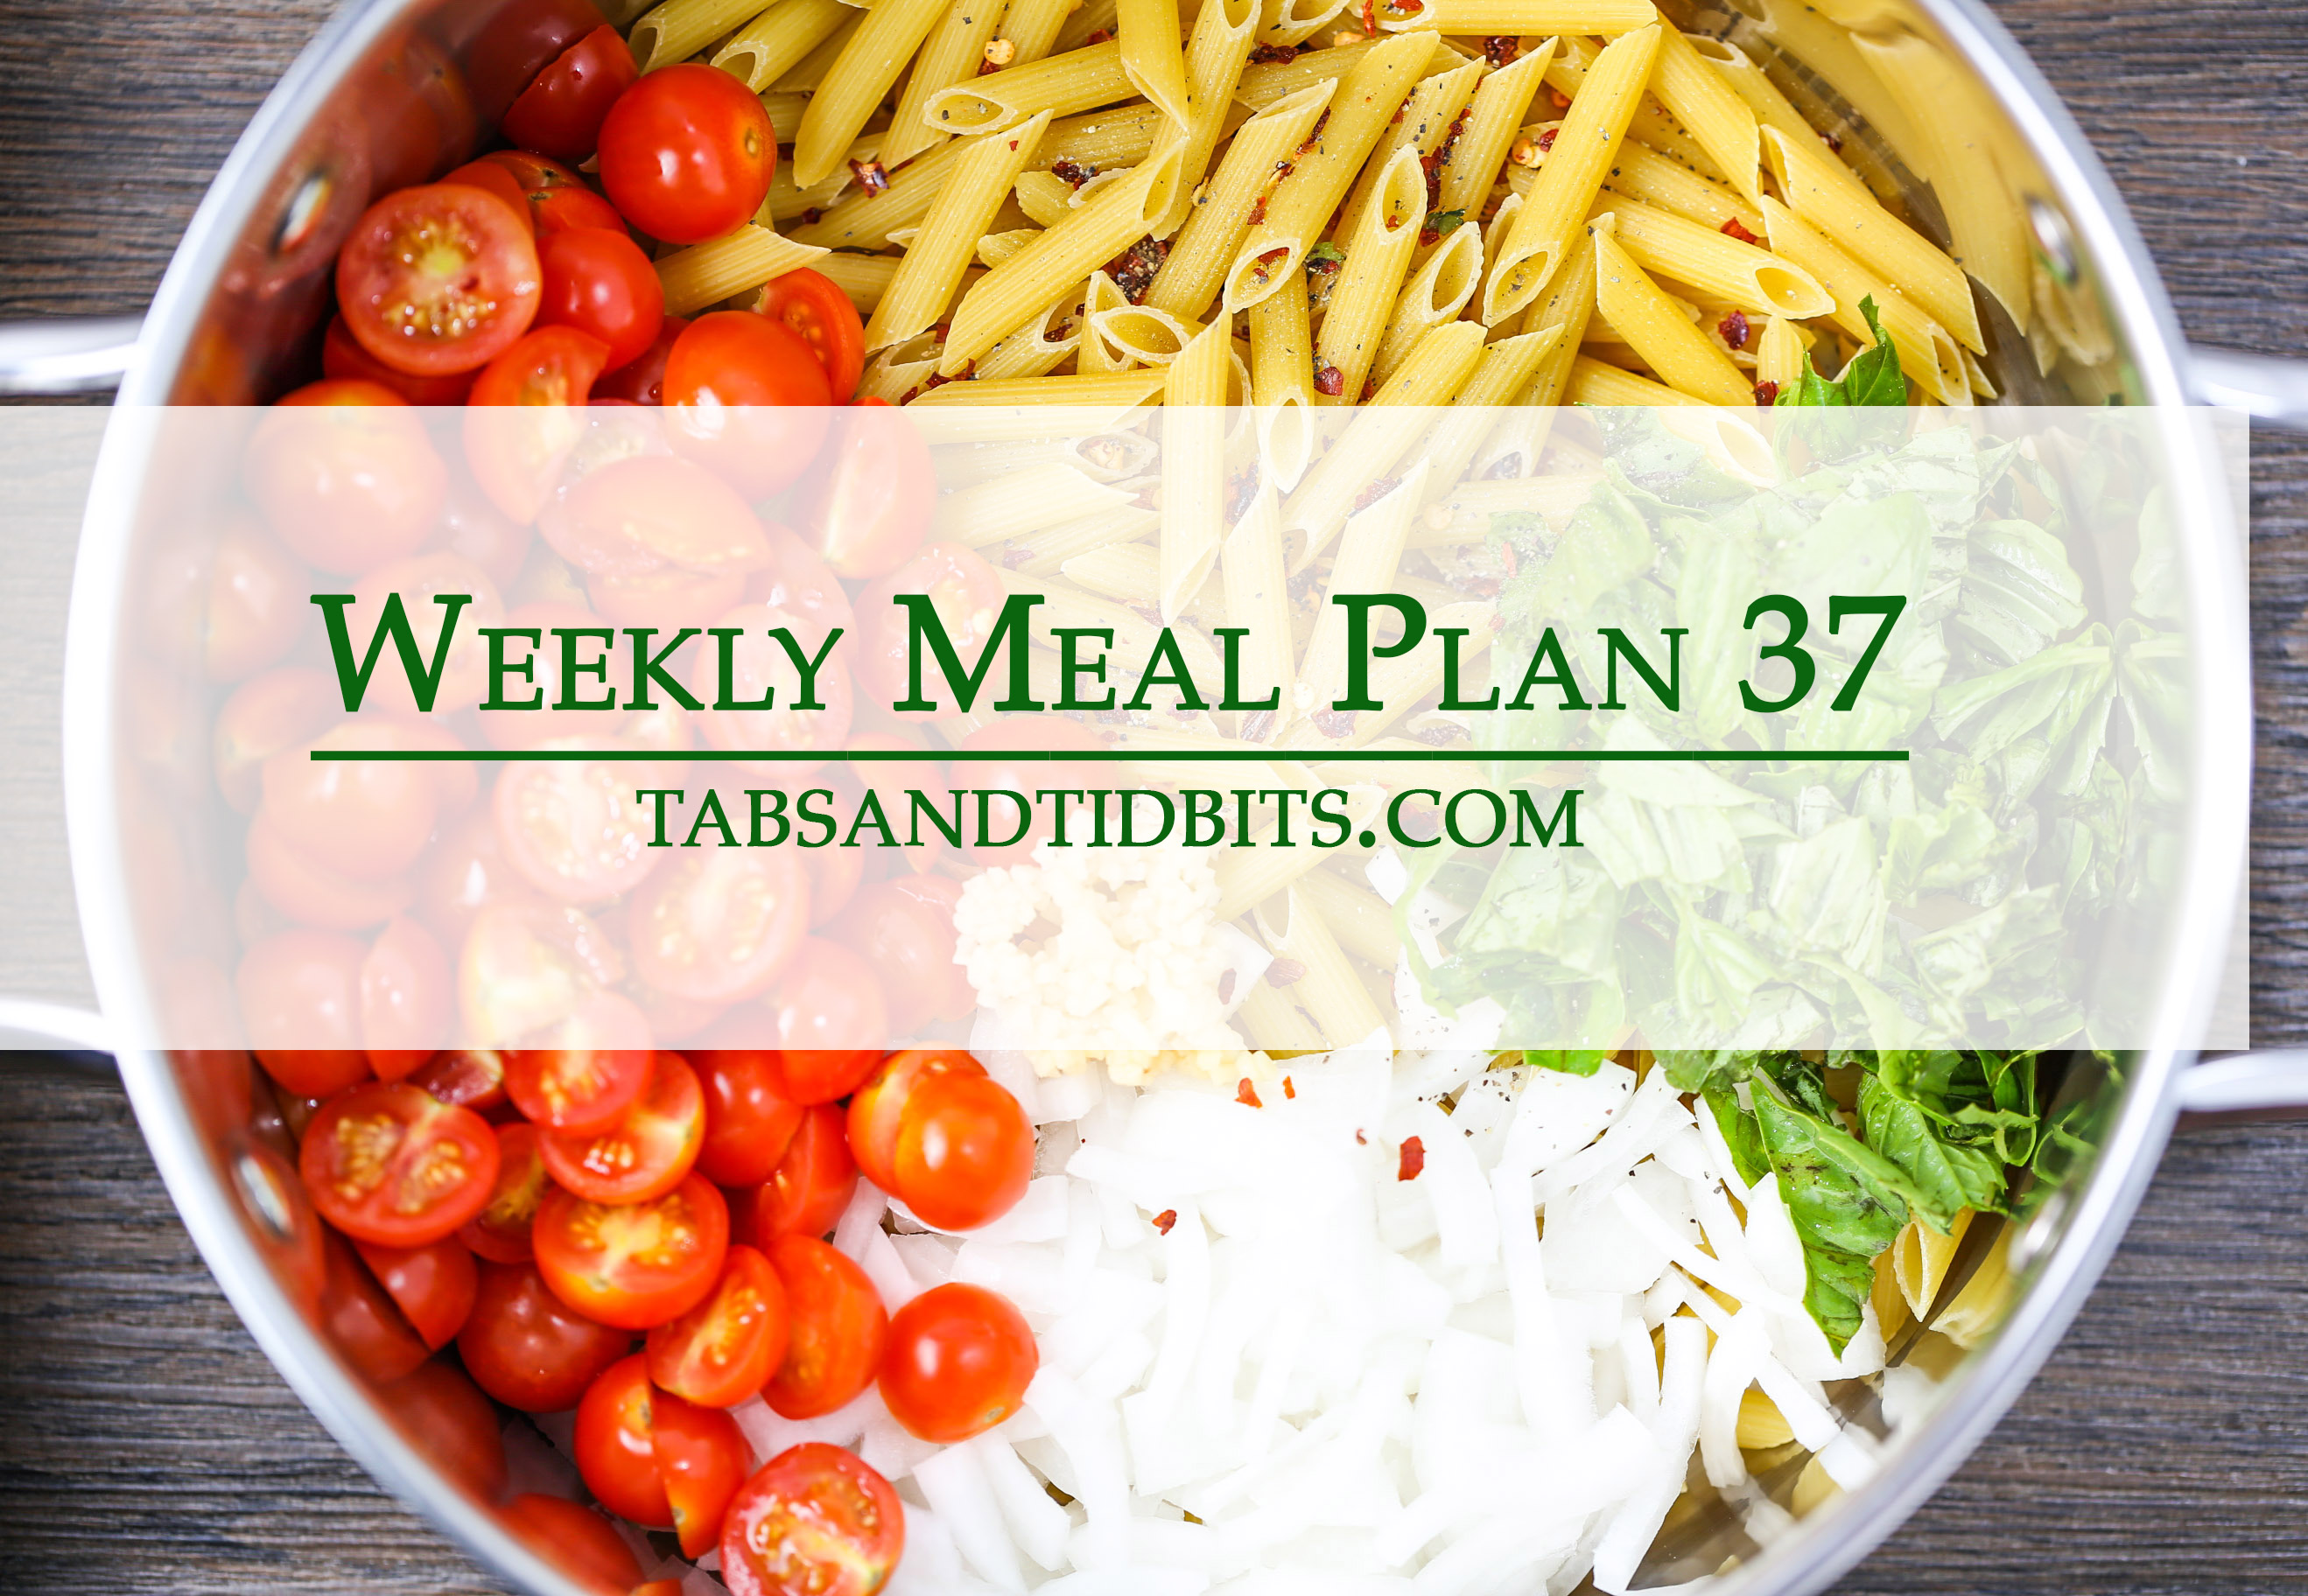 Weekly Meal Plan 37